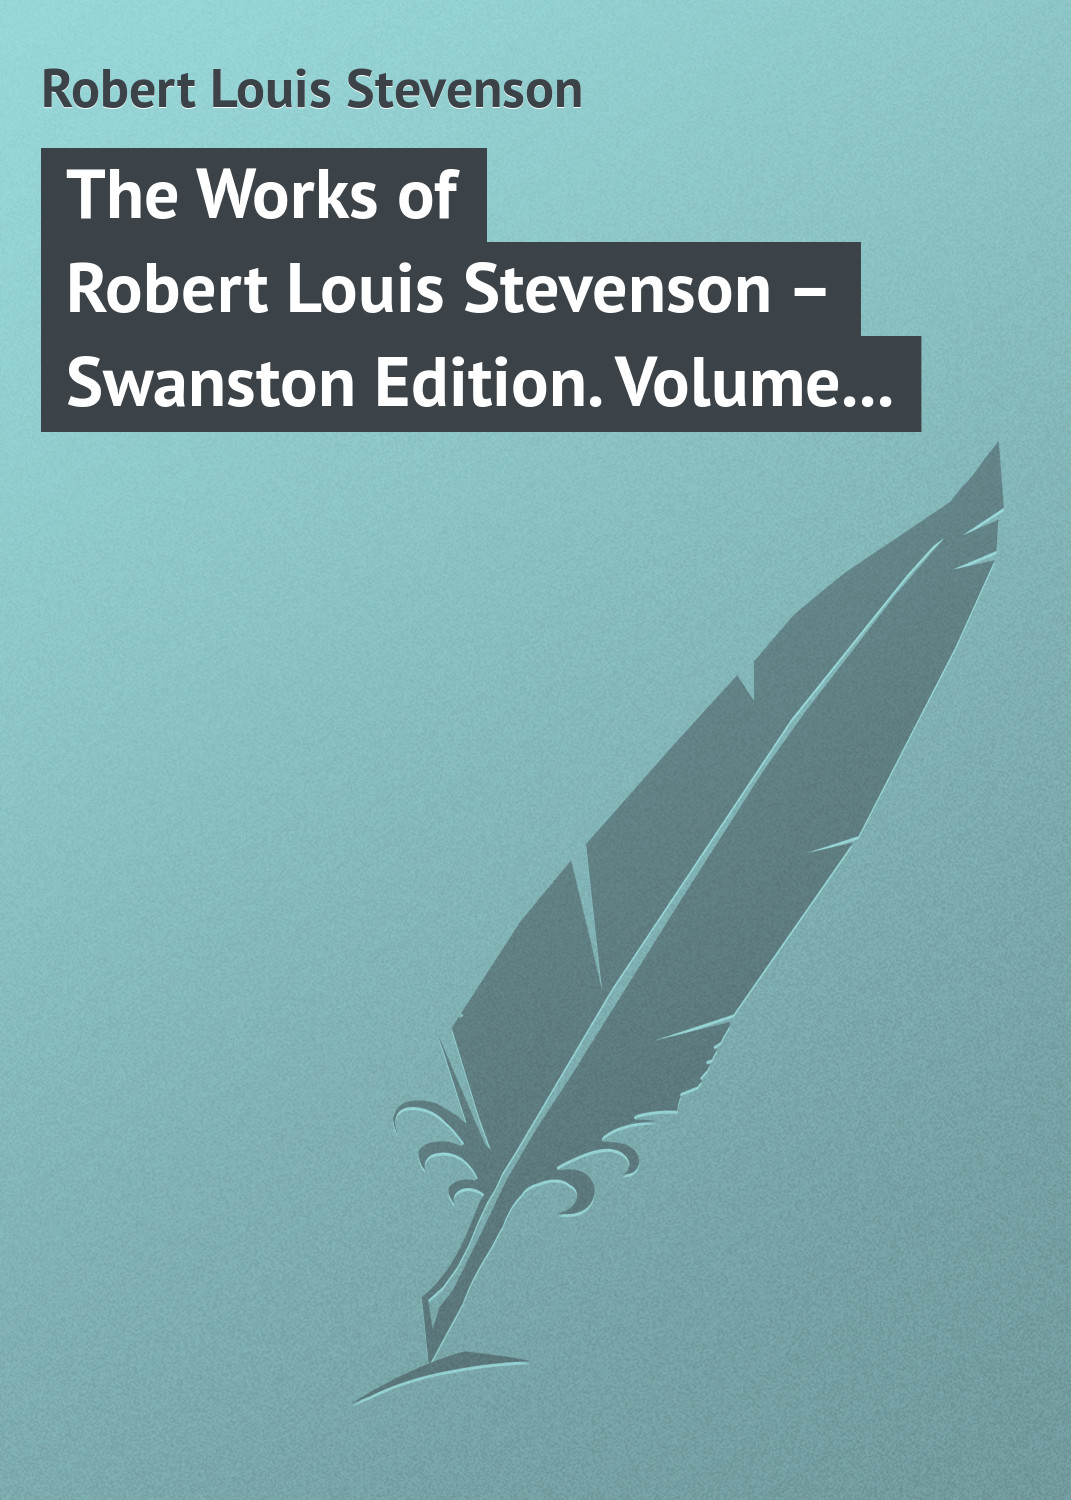 цена на Роберт Льюис Стивенсон The Works of Robert Louis Stevenson – Swanston Edition. Volume 24